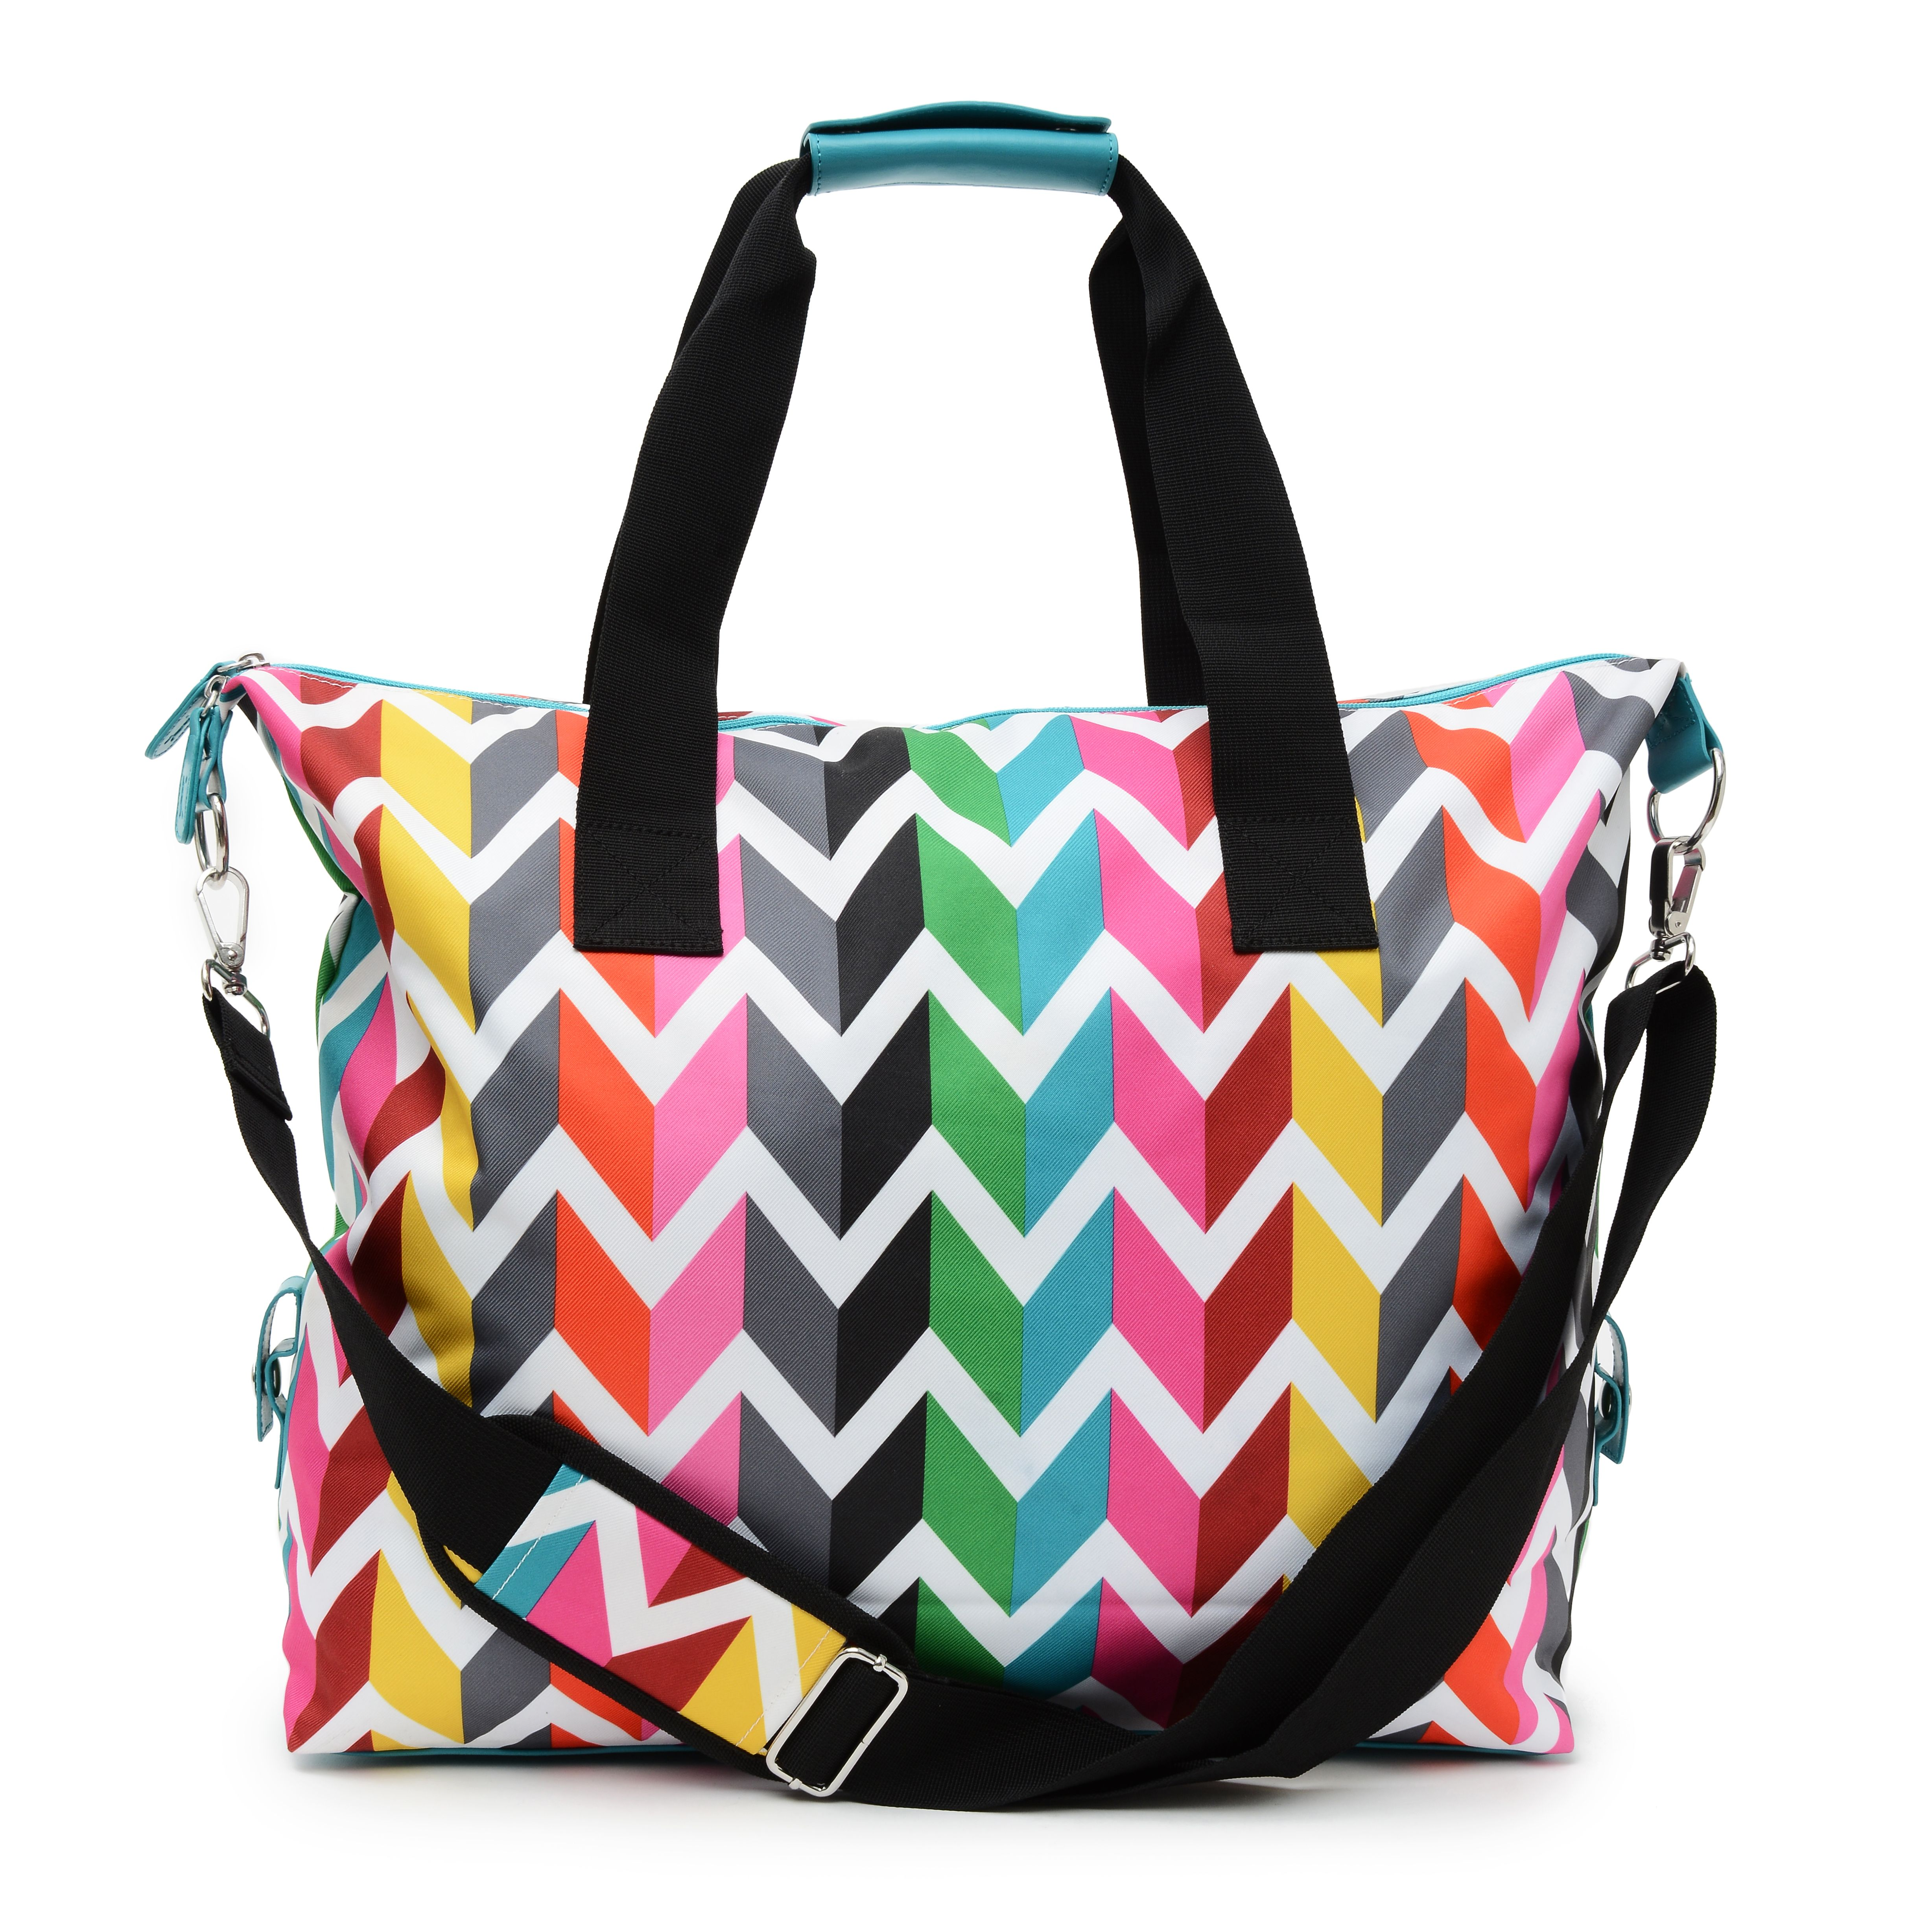 French Bull Weekender Bag Available At Target Vee Graphic And Colorful Chevron Print Perfect For An Overnight Or As Your Vacation Carry On